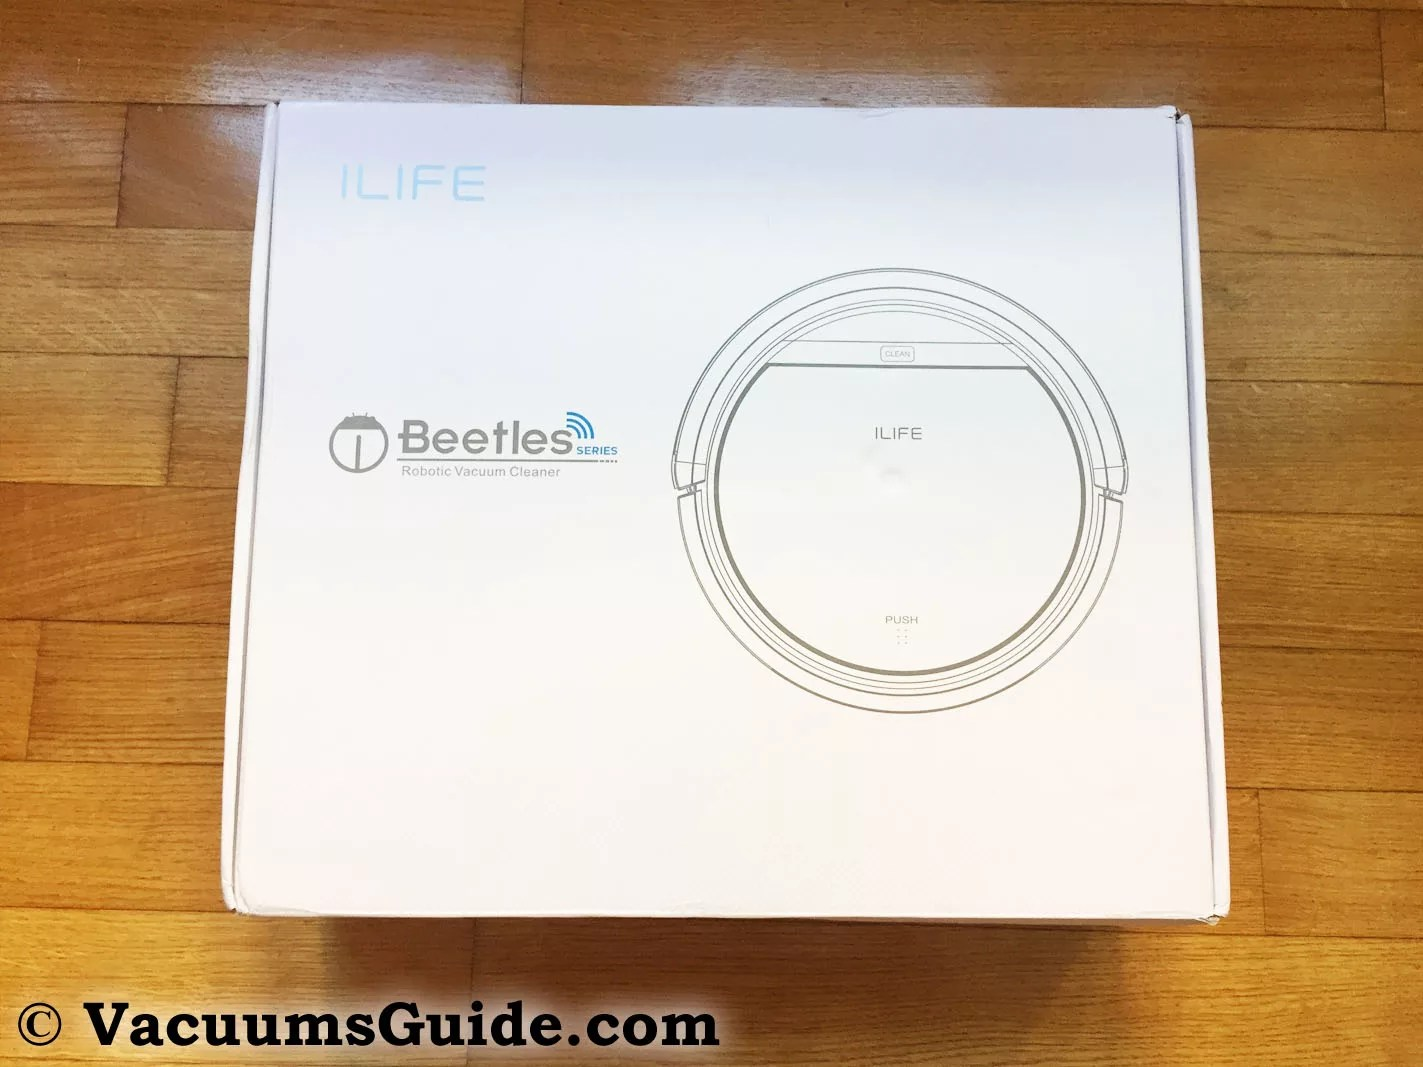 iLife V5S PRO package